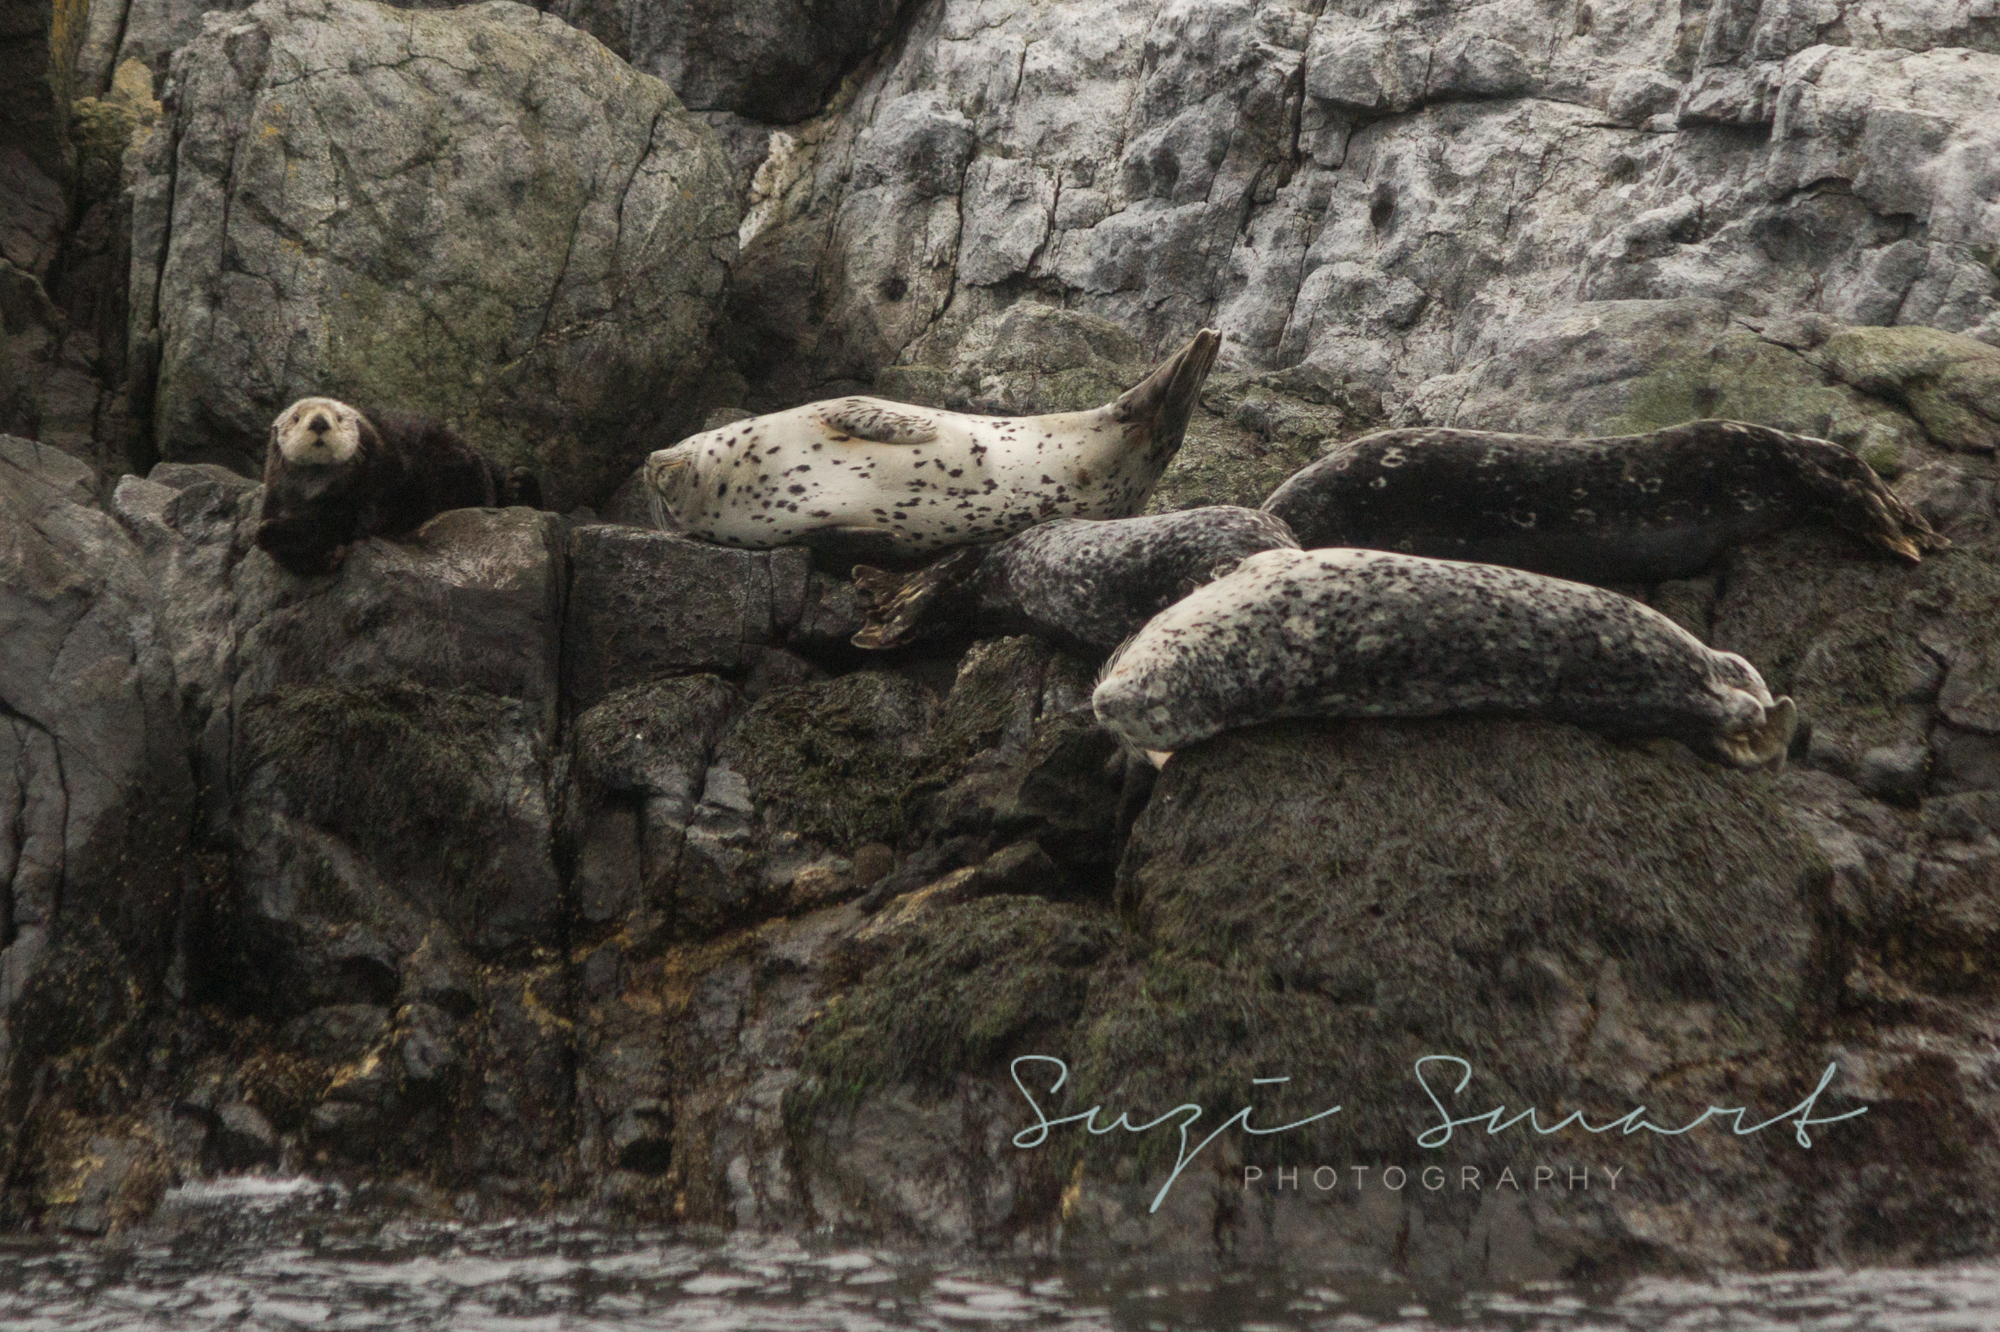 Sea otter at Race Rock Ecological Researve